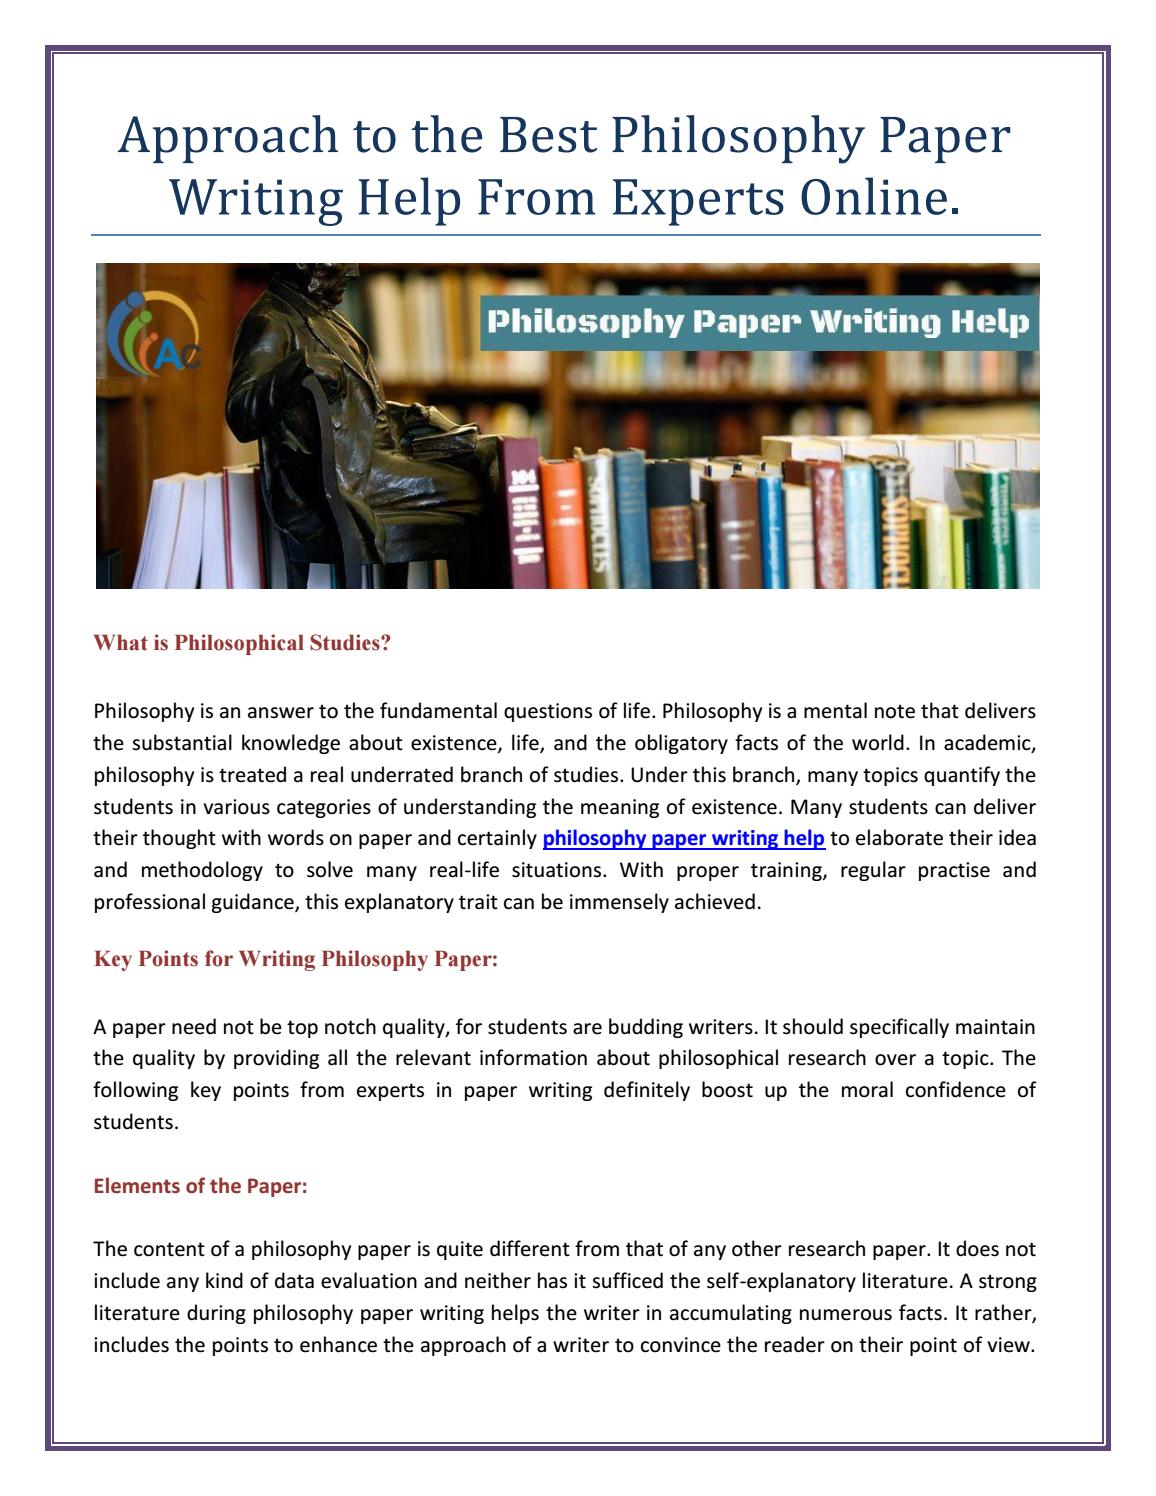 Teaching Essay Writing High School Approach To The Best Philosophy Paper Writing Help From Experts Online By  Assignmentconsultancy  Issuu Proposal For An Essay also Research Paper Essay Examples Approach To The Best Philosophy Paper Writing Help From Experts  Personal Essay Examples For High School